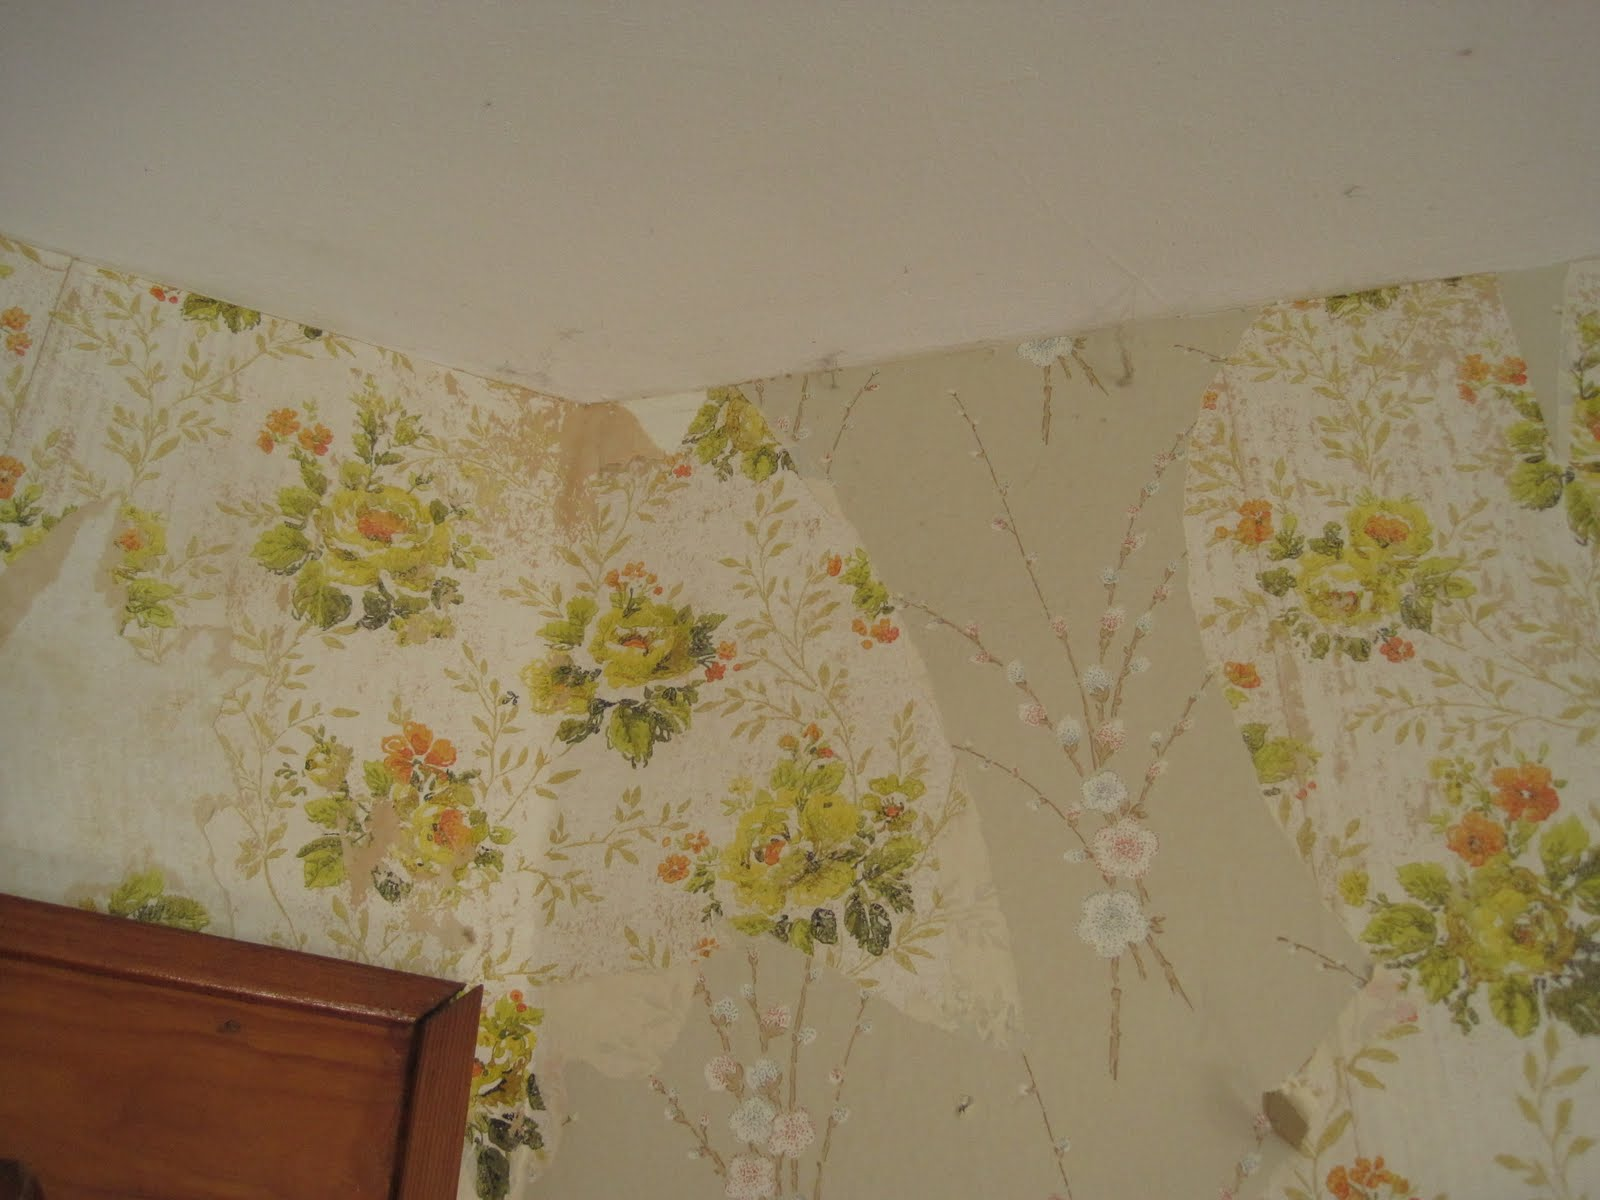 how to remove wallpaper with fabric softener and water